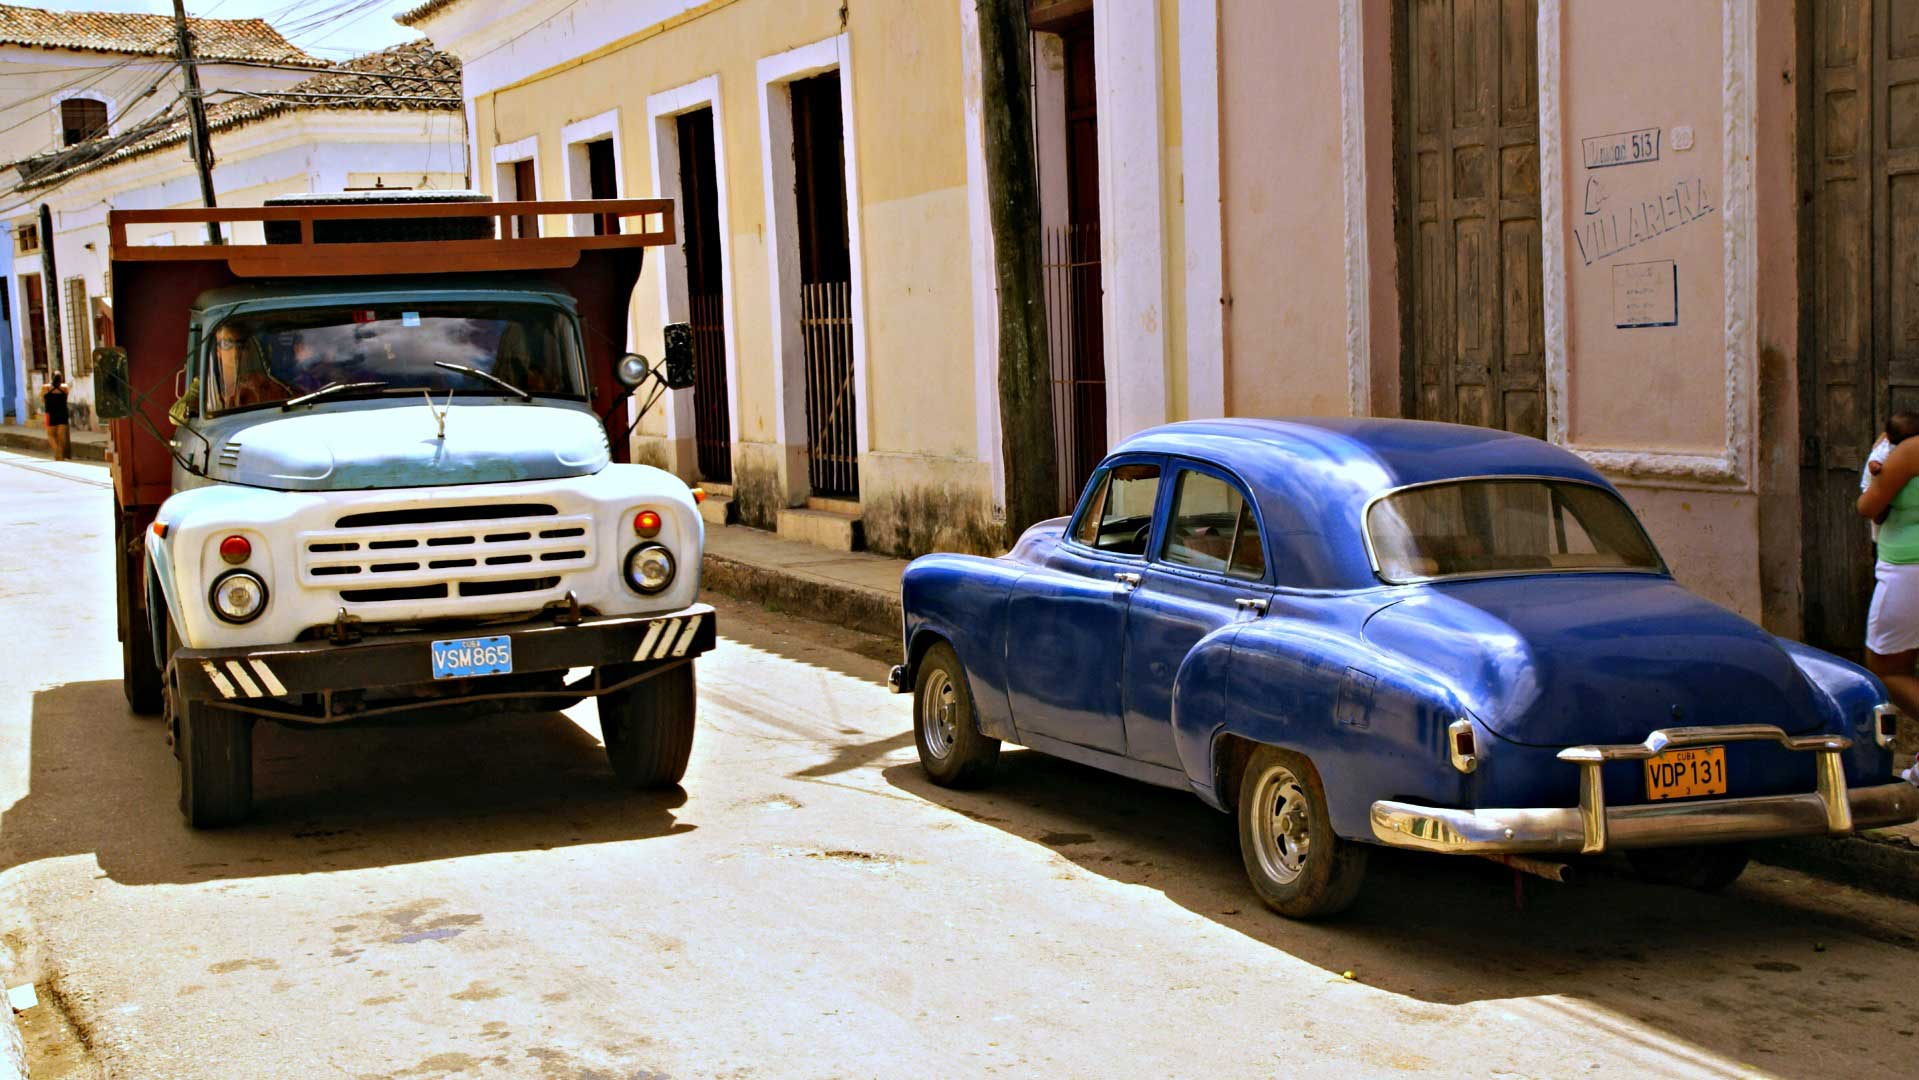 This kind of truck could be a taxi in Cuba. Photo by Ovidiu Balaj